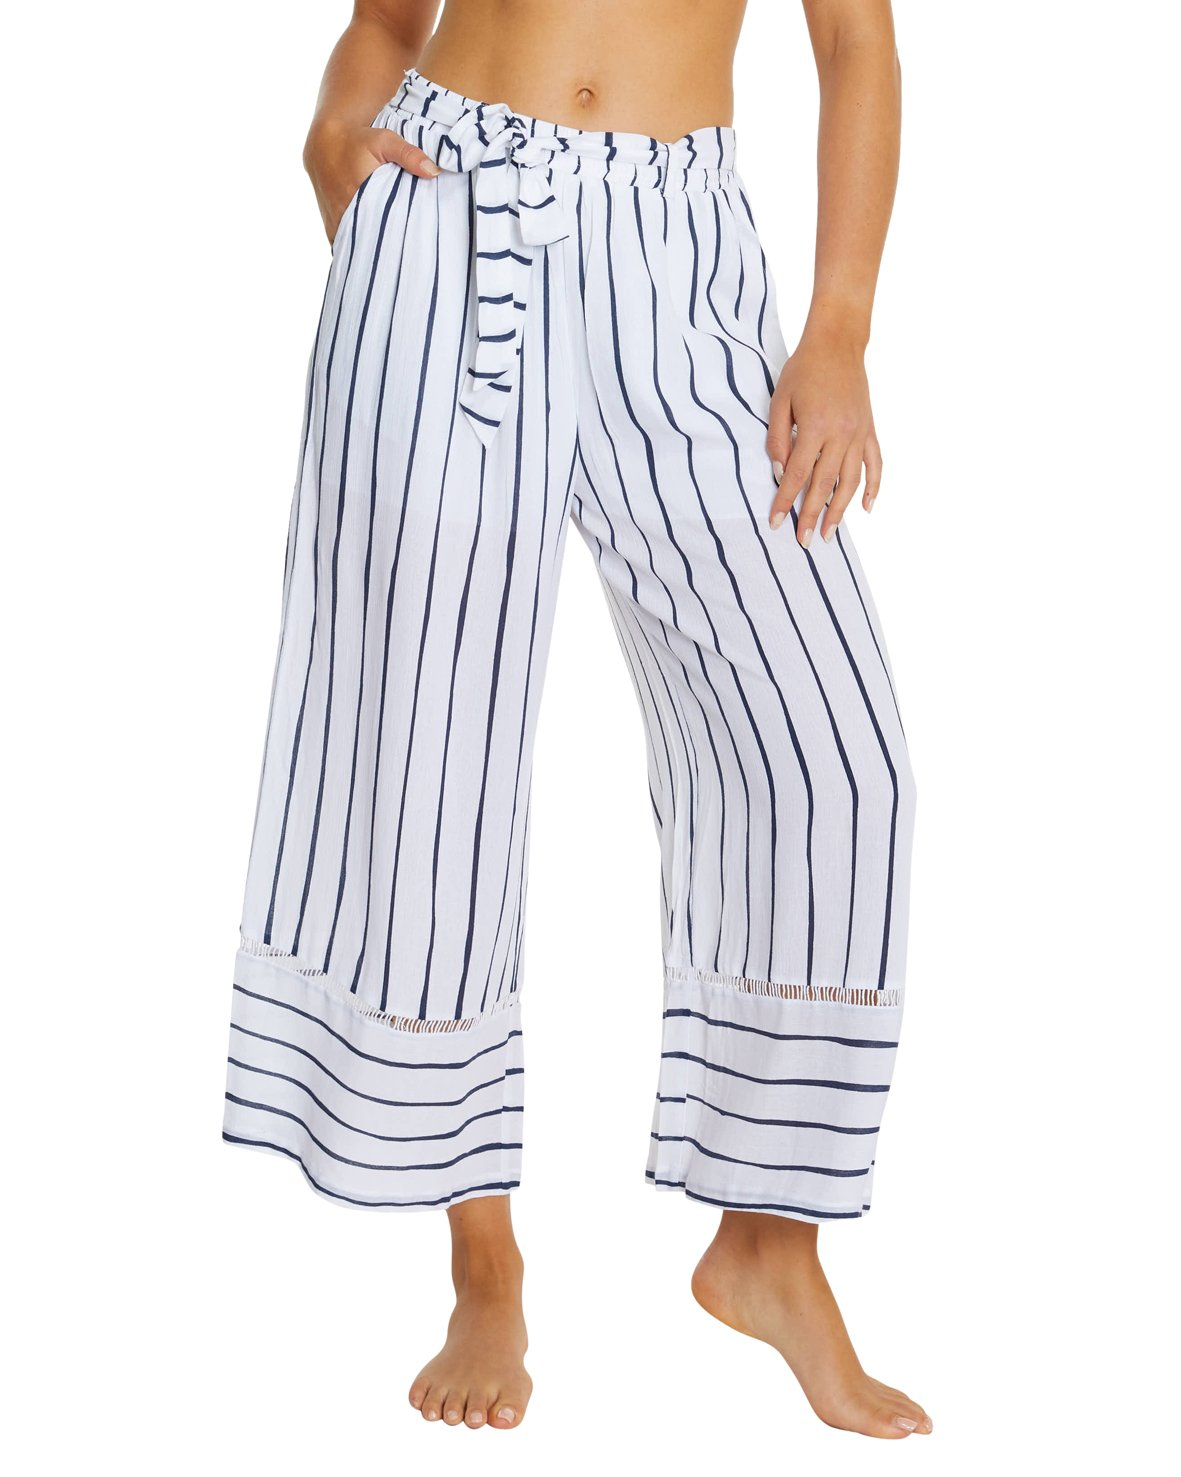 PORTOFINO LEISURE PANT